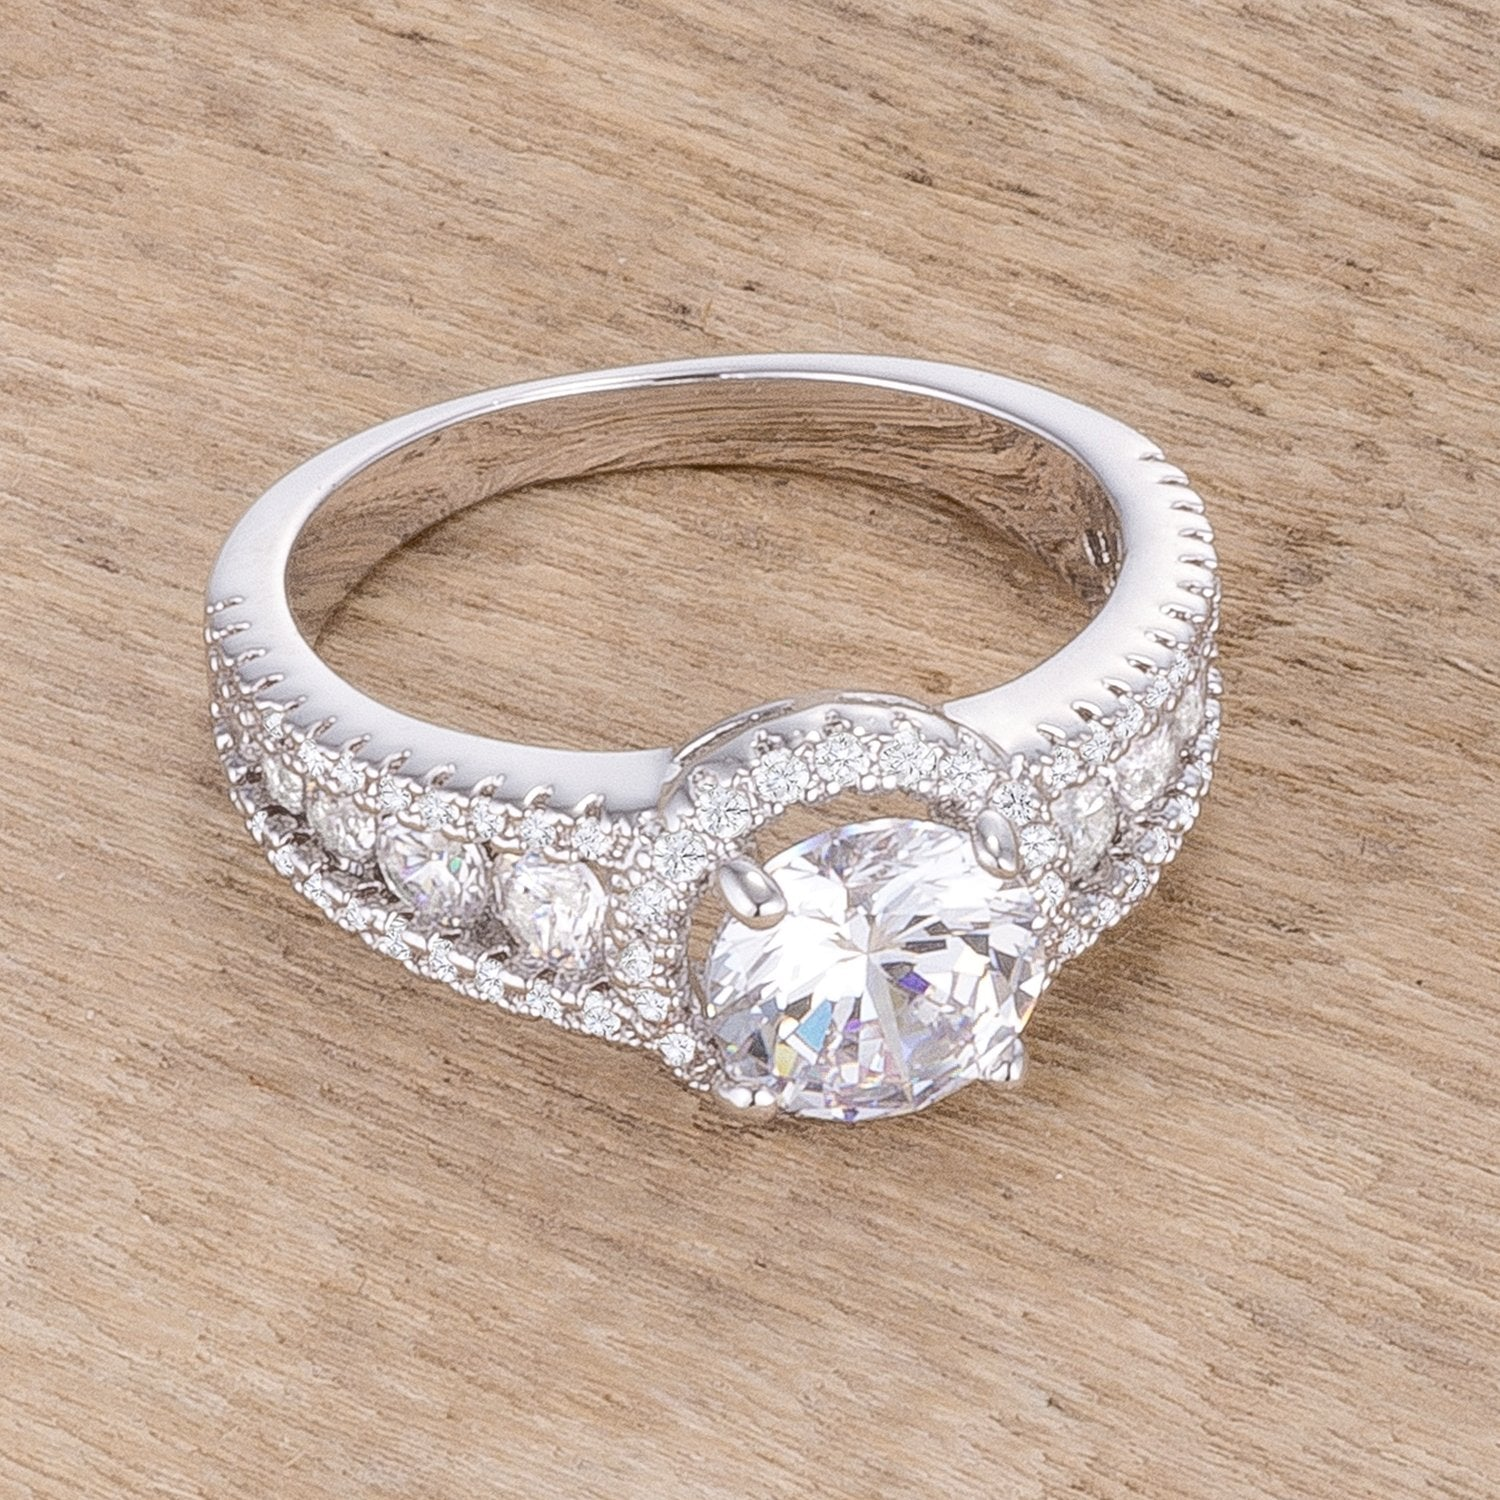 Carly's Solitaire Engagement Halo Ring